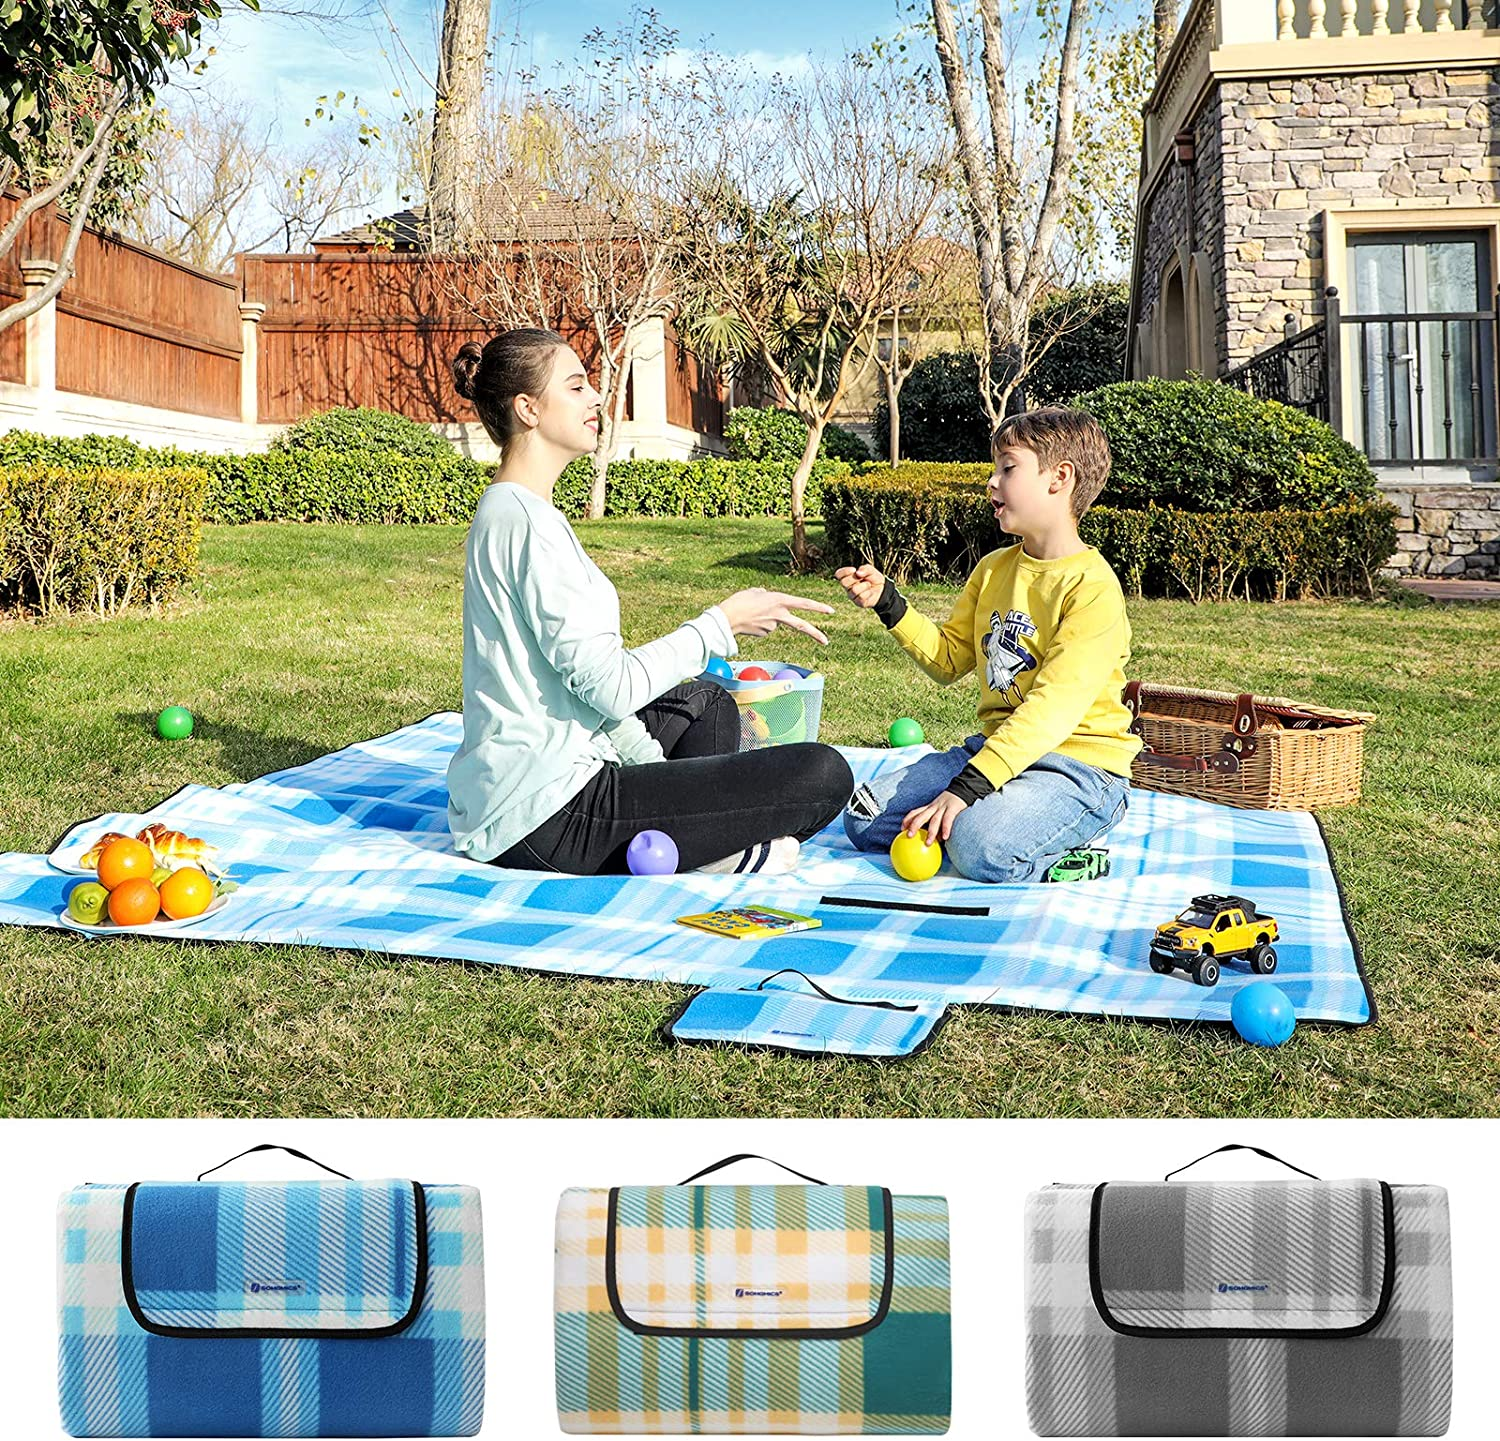 Foldable Park Yard Large Camping Mat and Rug for Outdoors 195 x 200 cm SONGMICS Picnic Blanket with Waterproof Backing Beach Blue and White GCM61UW